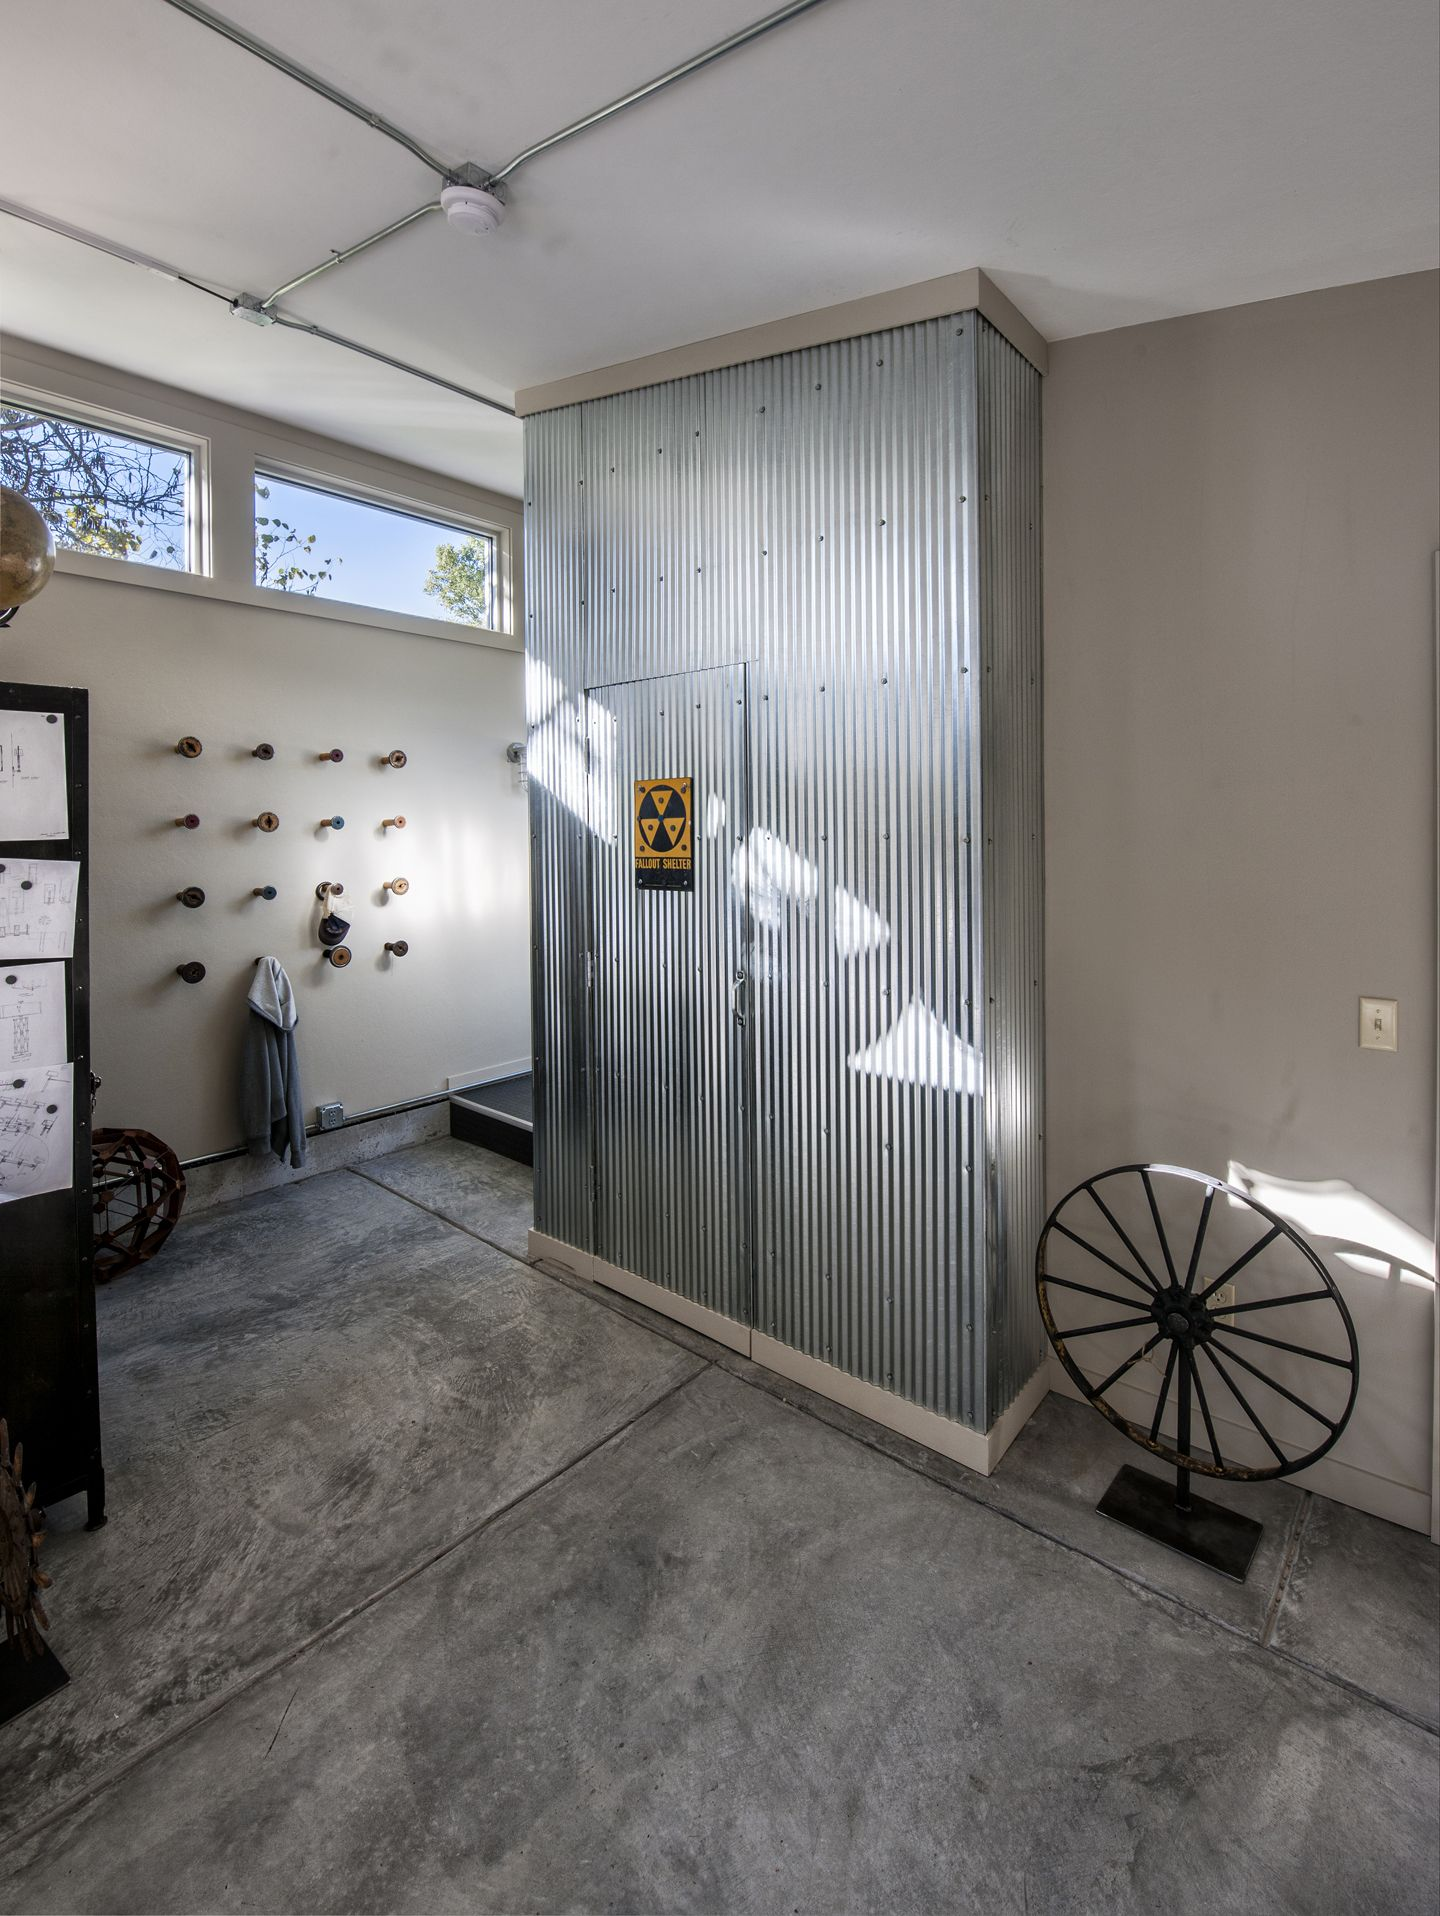 The Studio Has A Galvanized Wall Around The Bathroom Corrugated Wall Corrugated Metal Wall Entry Design